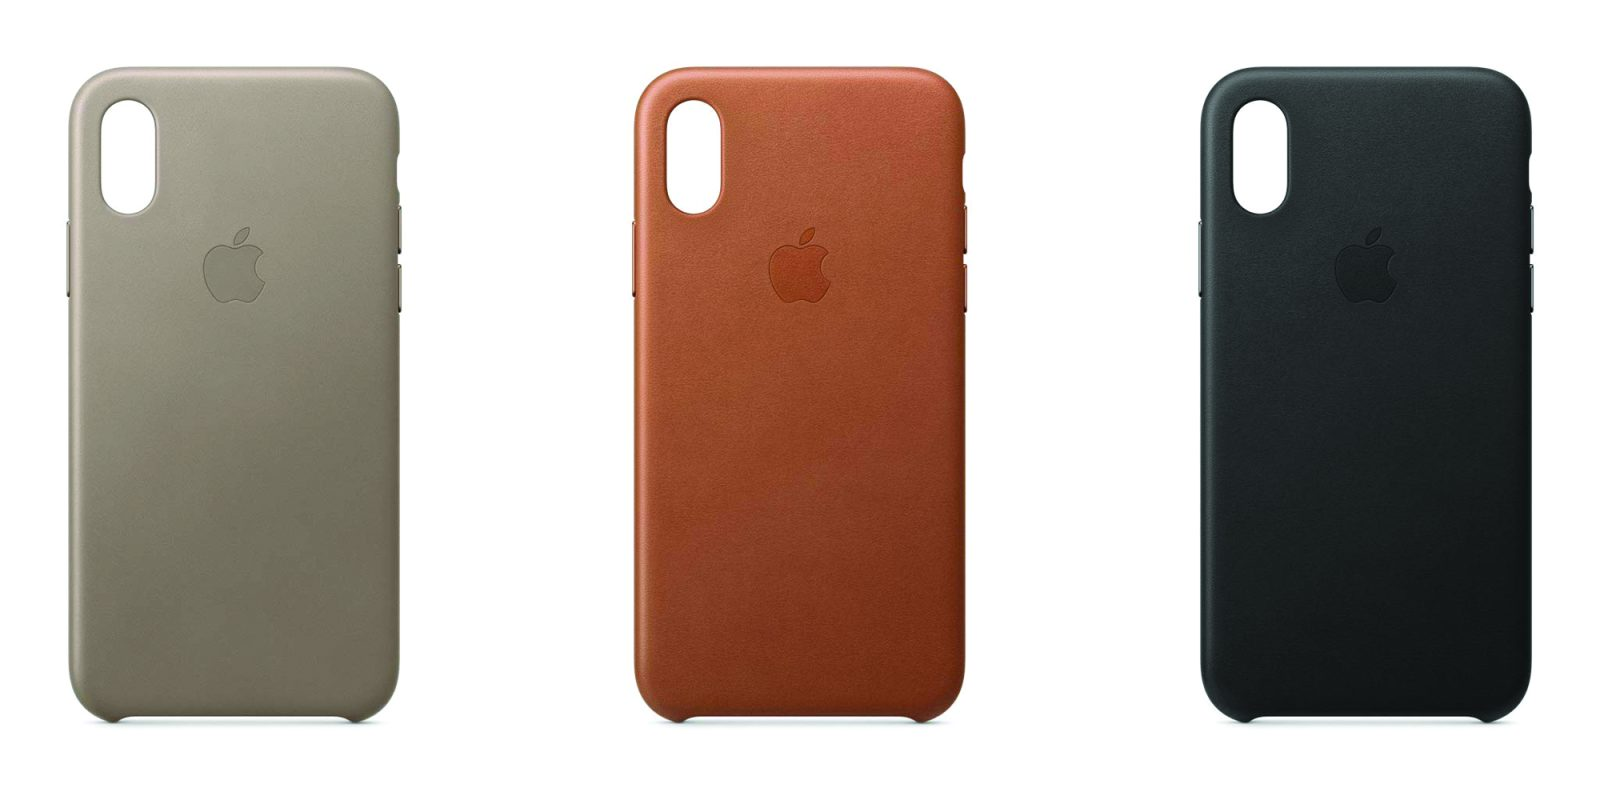 Official Apple leather iPhone XS cases on sale from $25 (Reg. $49)